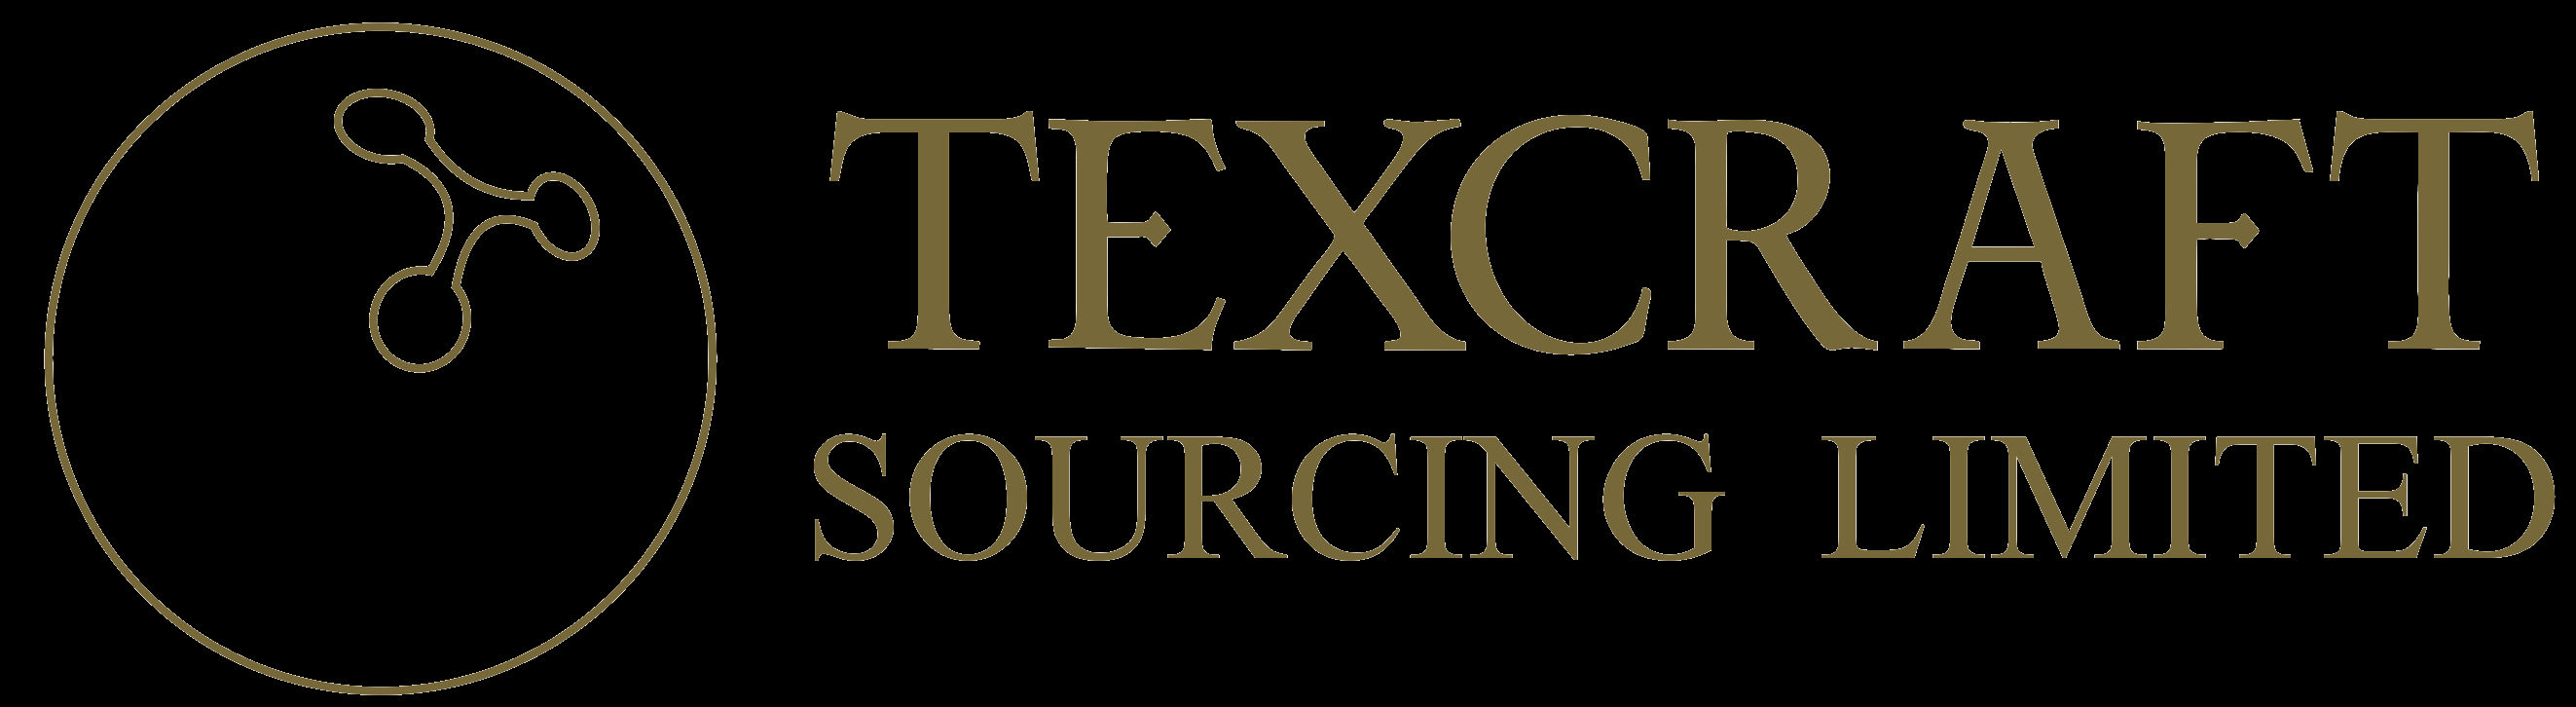 TexCraftSourcing